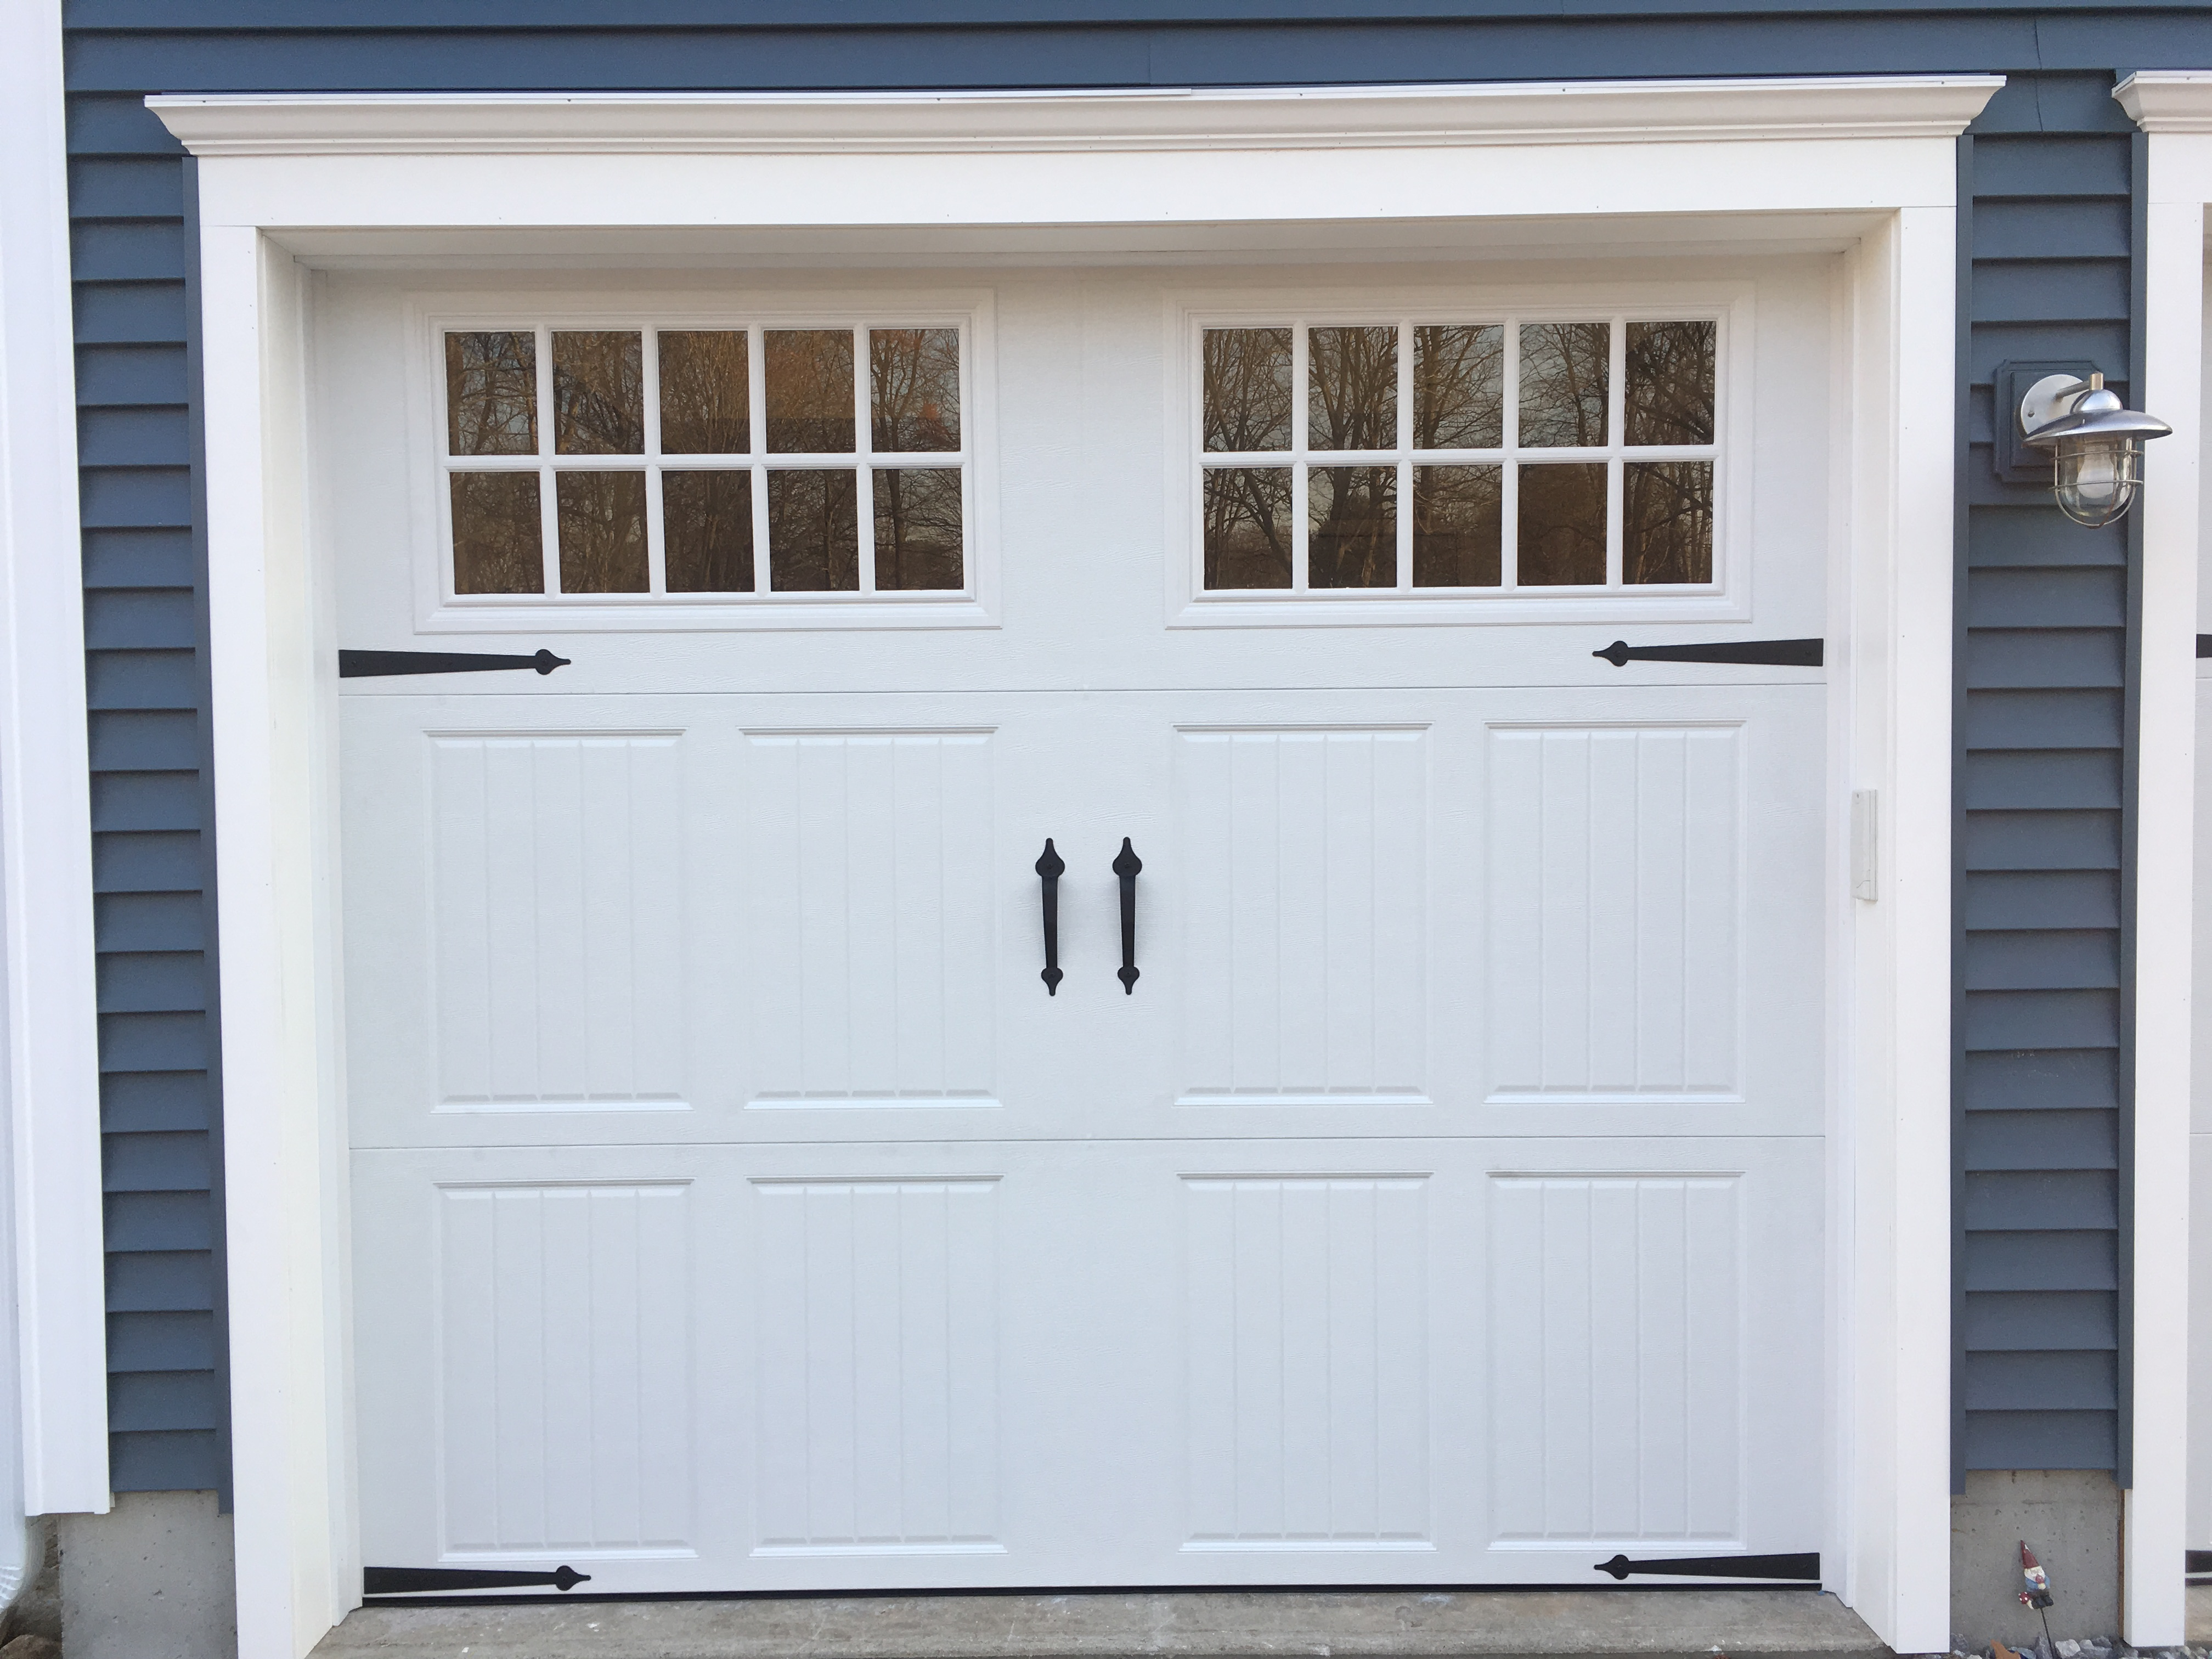 Classica northampton garage door white 9 x 8 no windows -  We Built Opening Down With 1x4 To Accommodate 6 9 High Doors And Give Full Reveal To 6 Pane Glass Windows And Not Clip Or Miter The Rectangle Windows